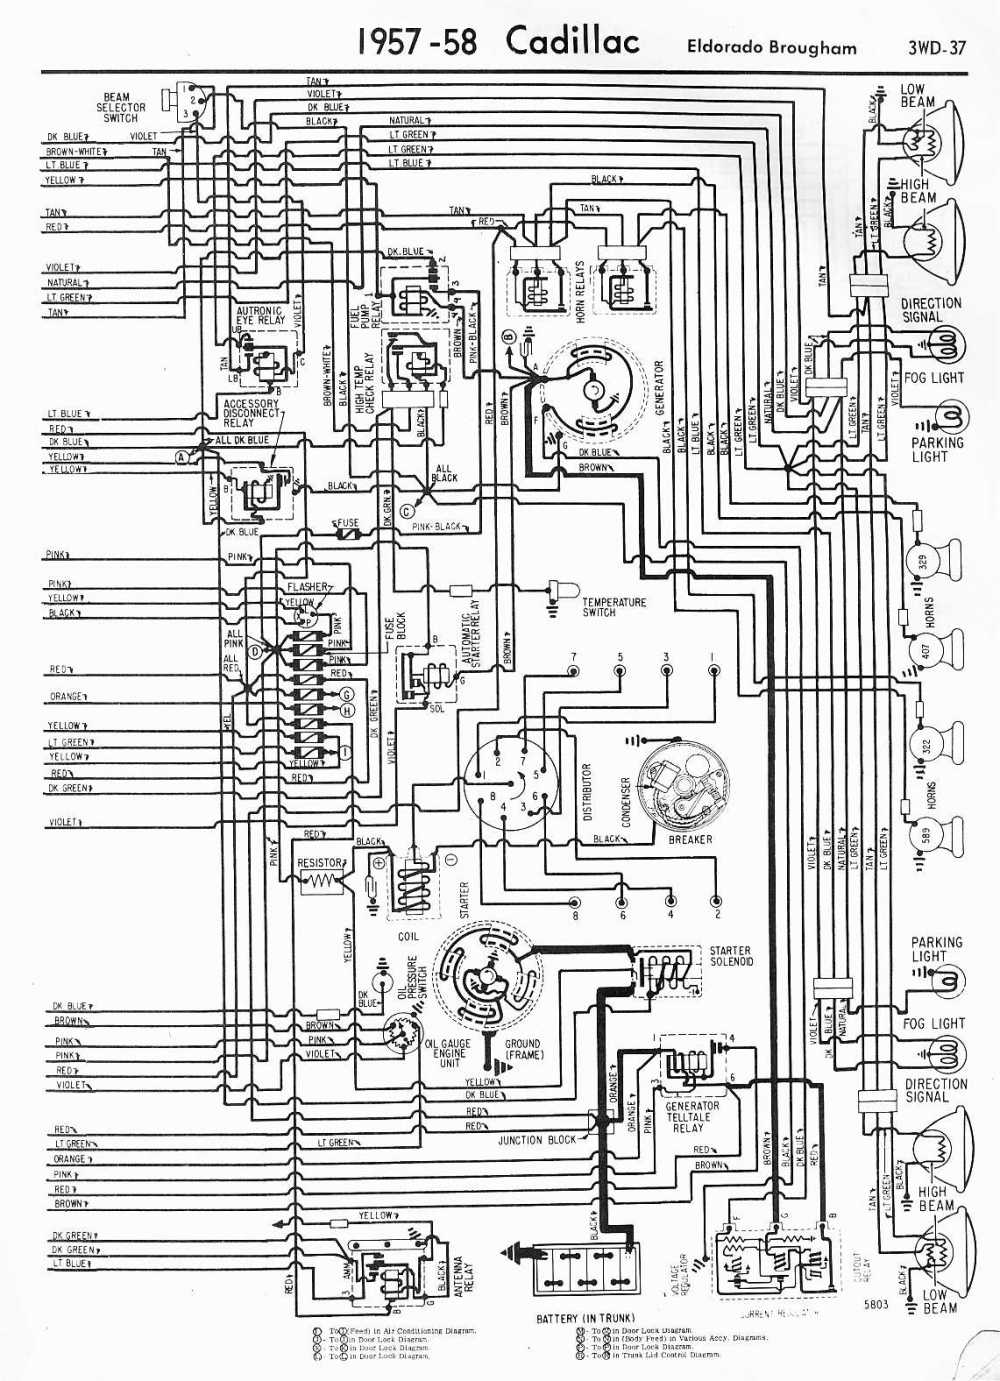 medium resolution of cadillac wiring diagrams 1957 1965 1957 58 eldorado brougham right